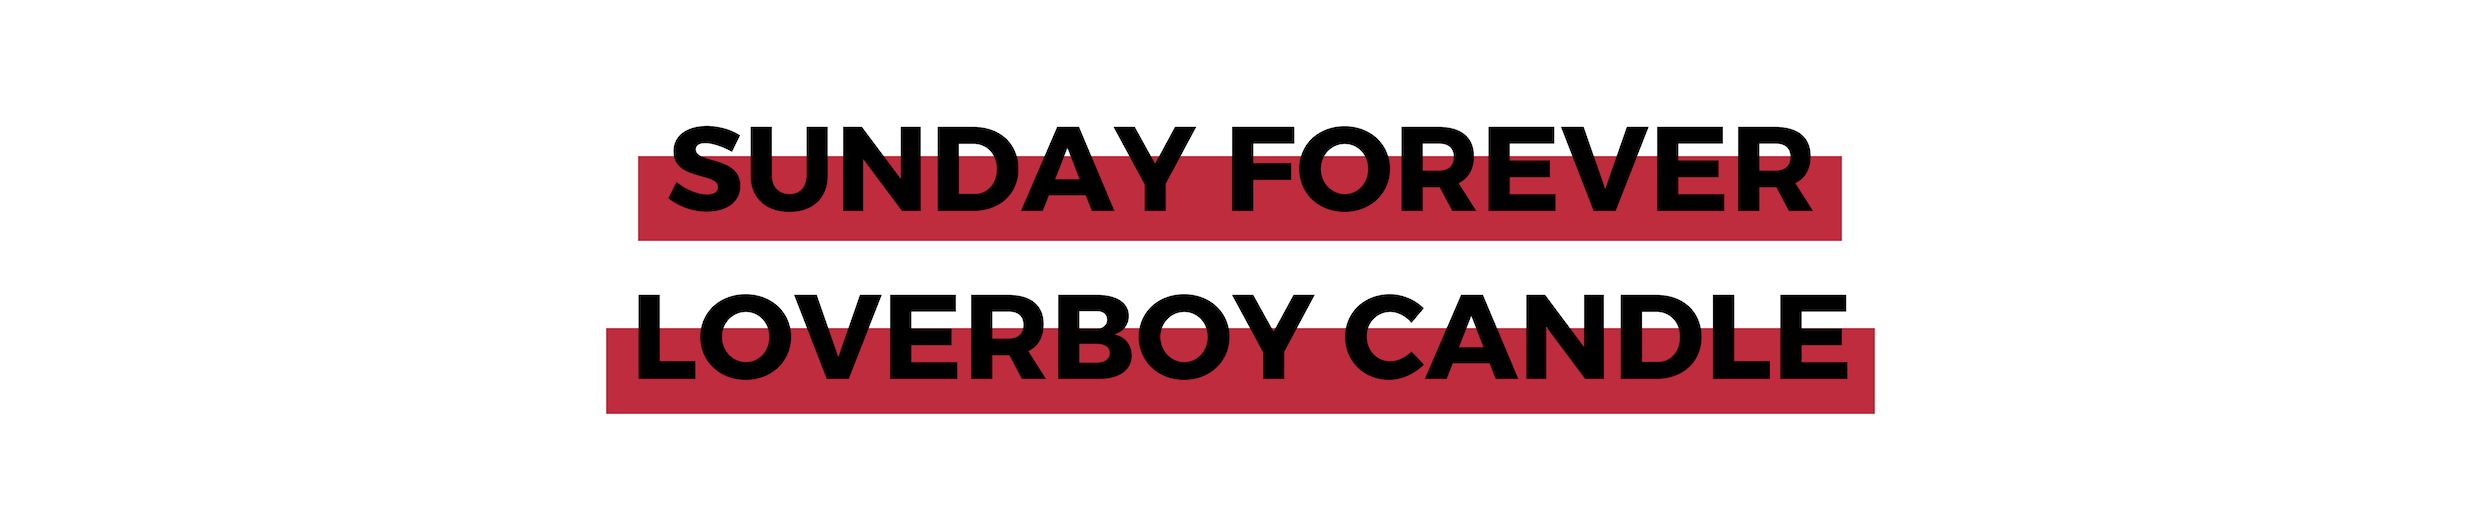 SUNDAY FOREVER LOVERBOY CANDLE (1).png